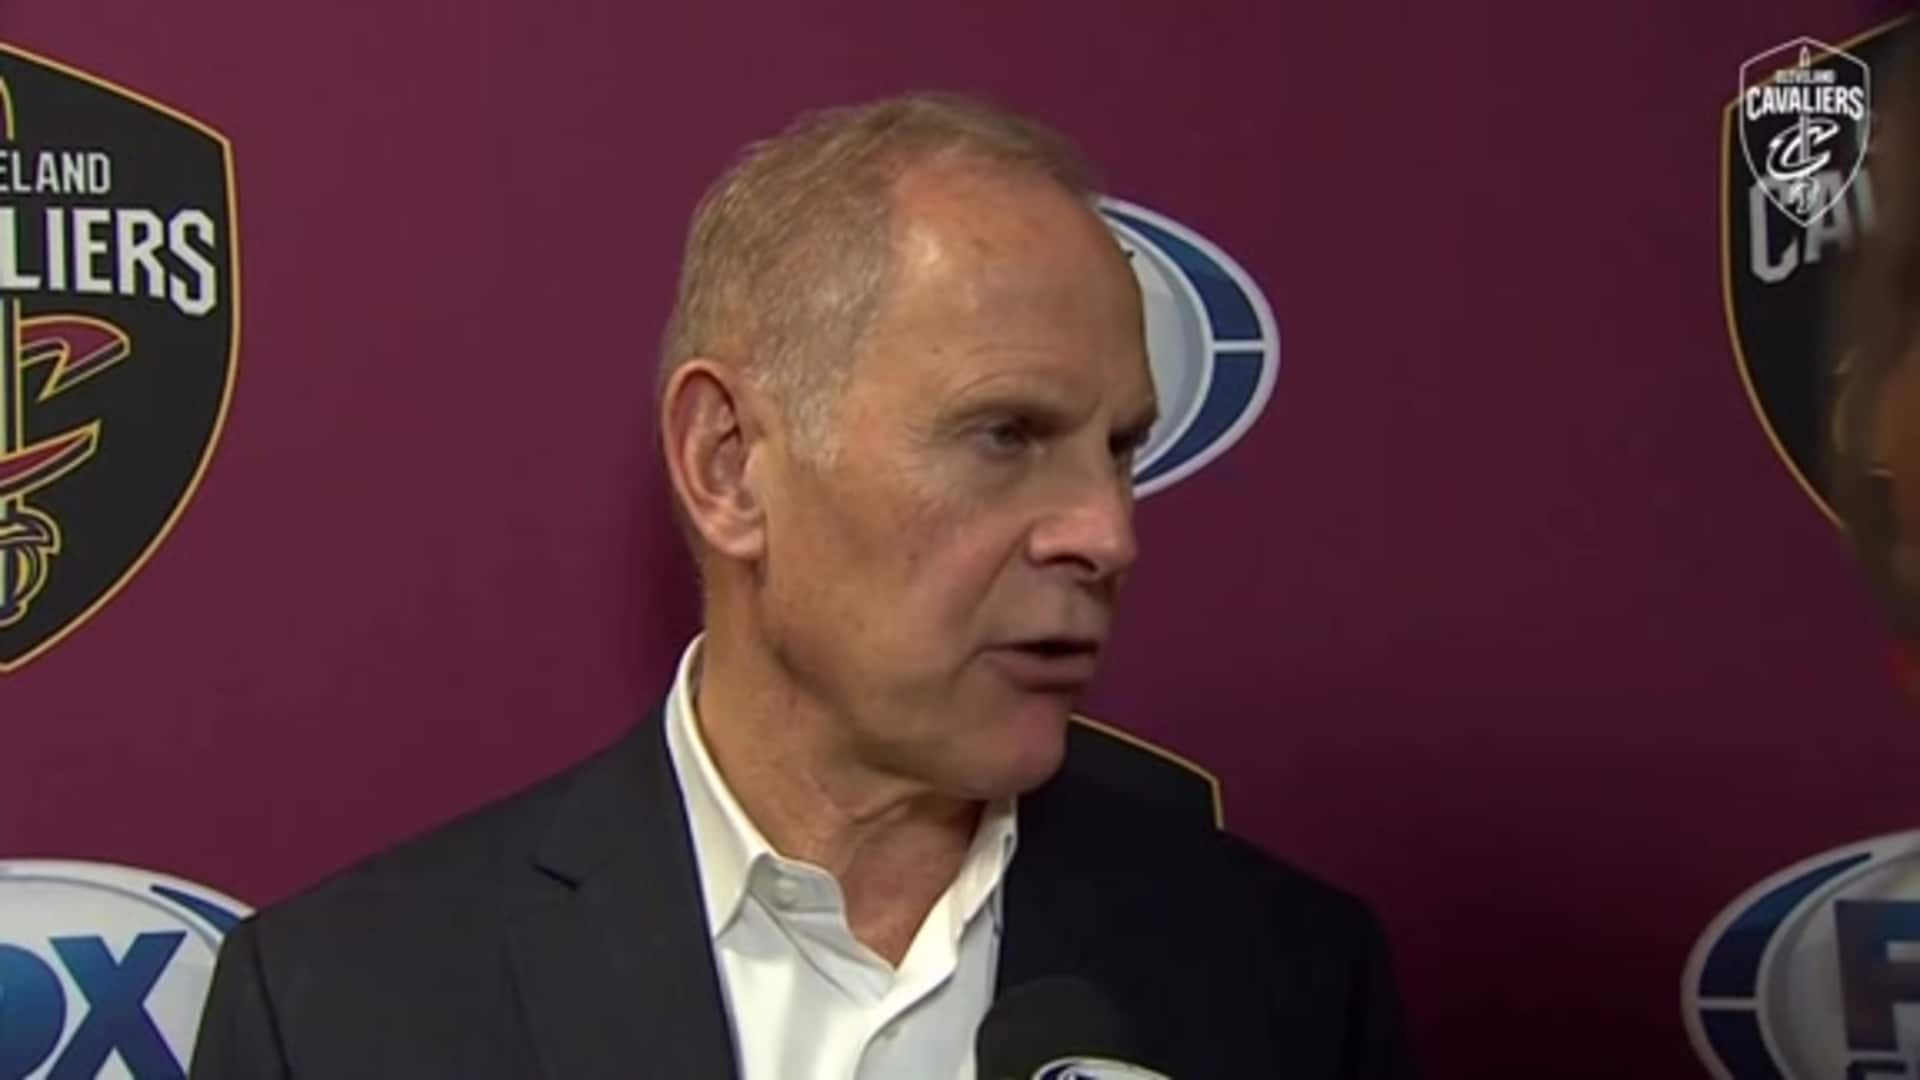 Cavs at Sixers Postgame: Coach Beilein